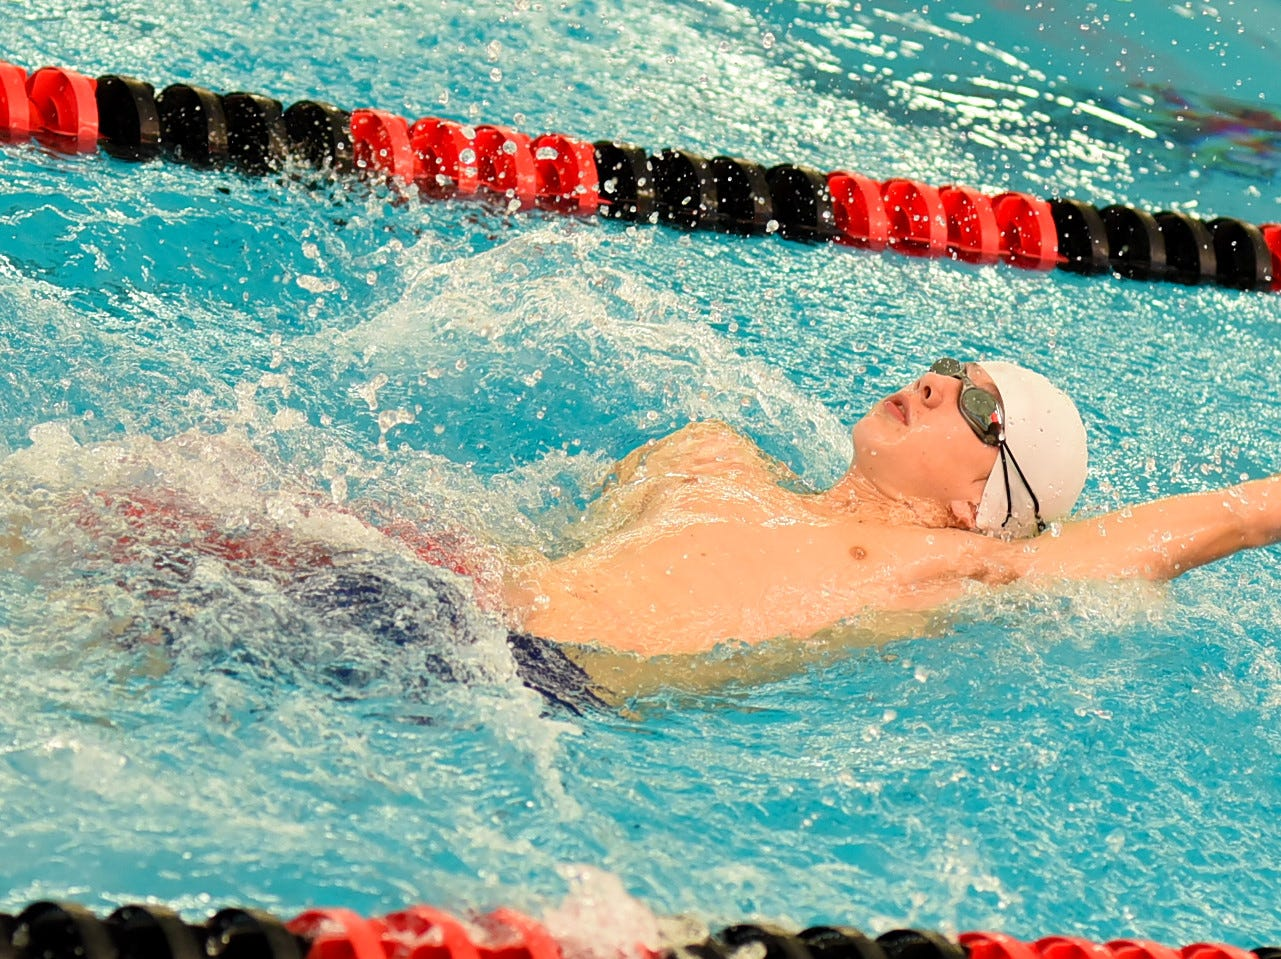 Conner Barners of Norwood swims in the boys 100 backstroke preliminaries at the Southwest Ohio Swimming and Diving Classic, January 19, 2019.